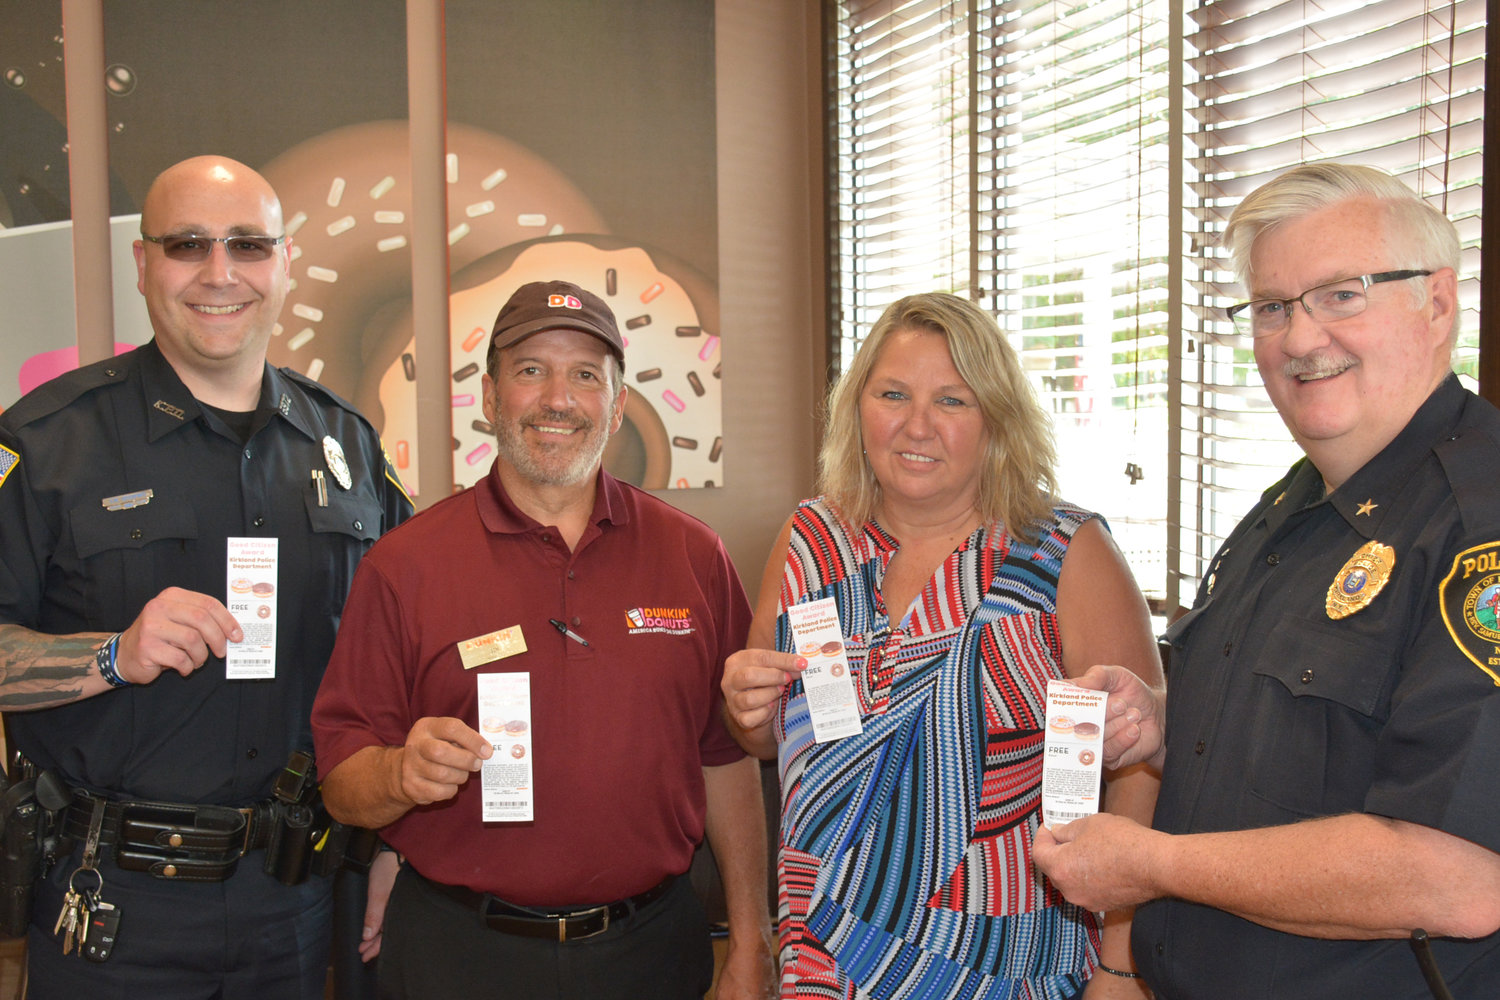 FREE DOUGHNUTS — The Kirkland Police Department along with the Clinton Dunkin' Donuts is partnering to hand out Good Citizen Awards for obeying the laws and being a good citizen of Clinton and Kirkland. Pictured from left are Officer Shawn Occhipinti, Dunkin' Donuts Manager Jim Hulser, Dunkin' Donuts Multi-Unit Manager Trudy Pellerito and Kirkland Chief of Police Dan English.